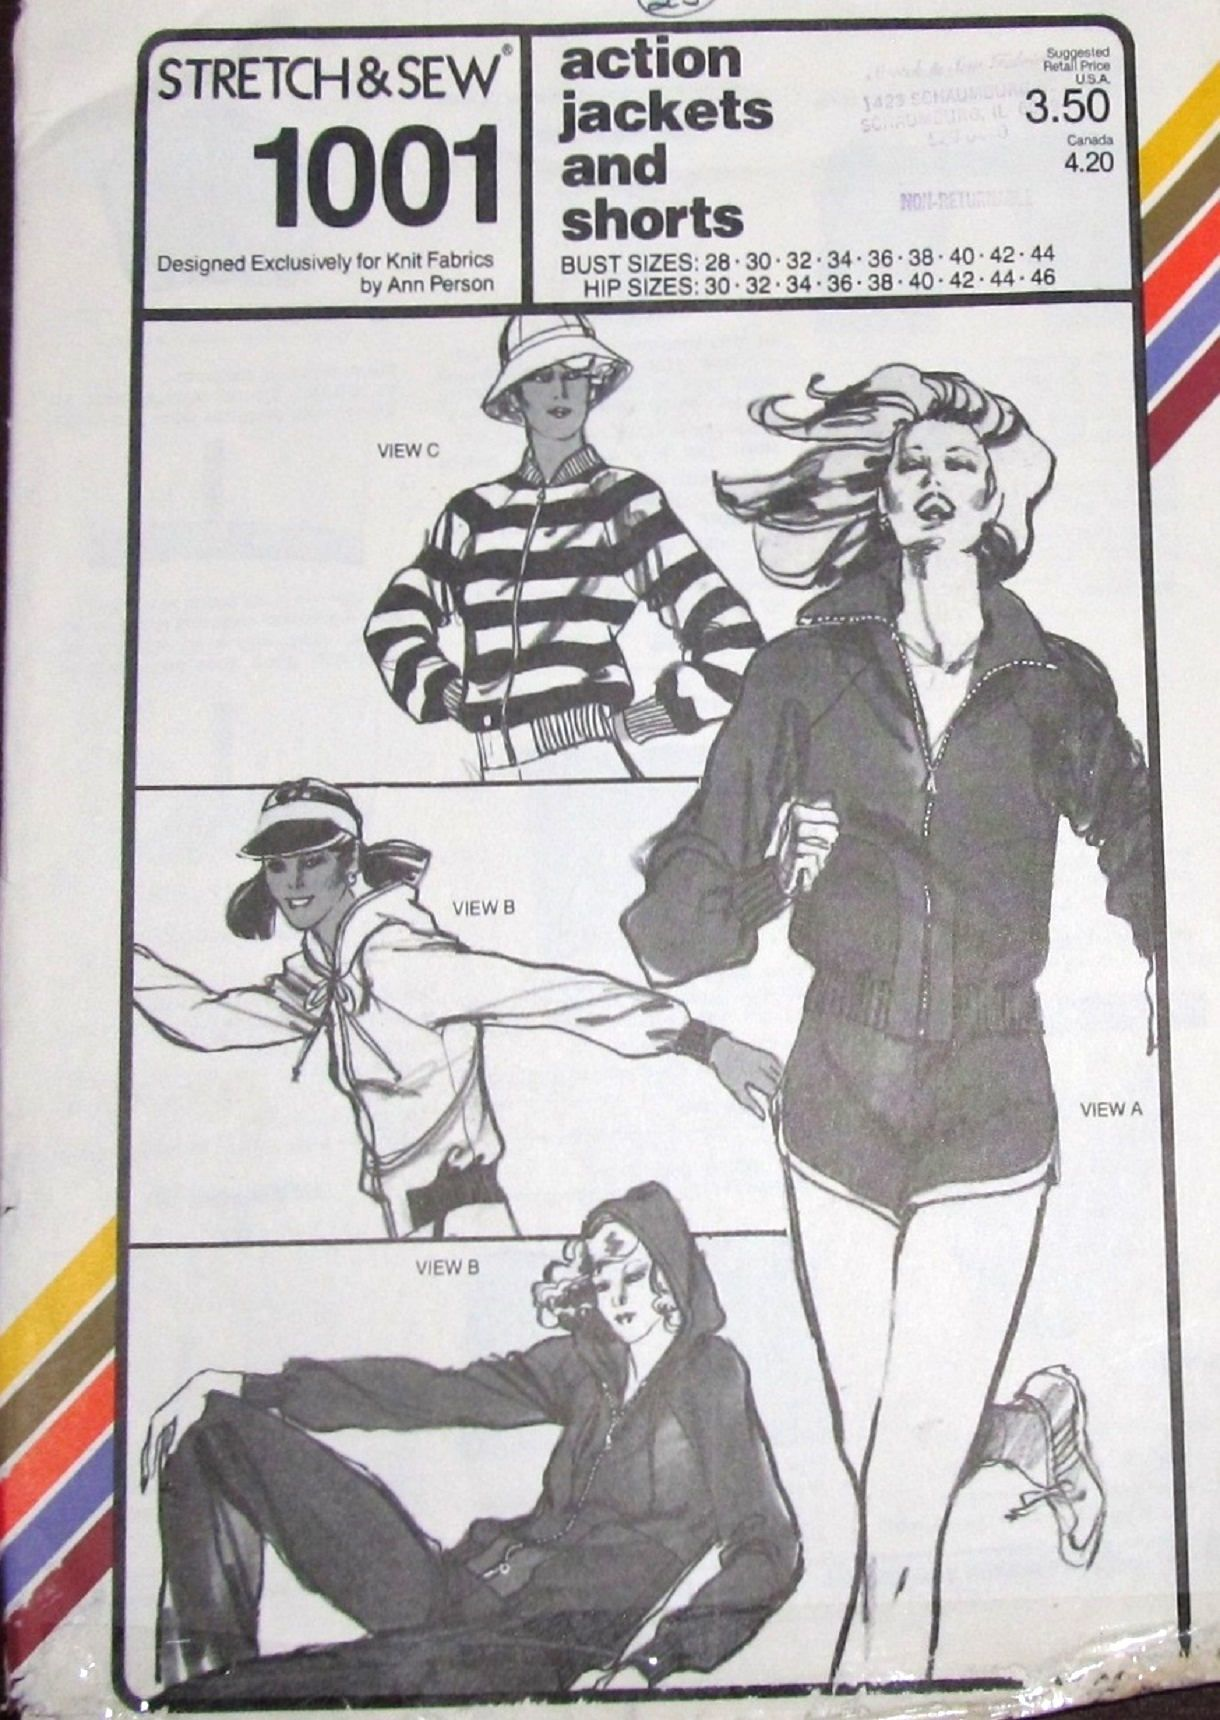 Vintage 1970s Ann Person Stretch & Sew Sewing Pattern 1001 Hoodie ...